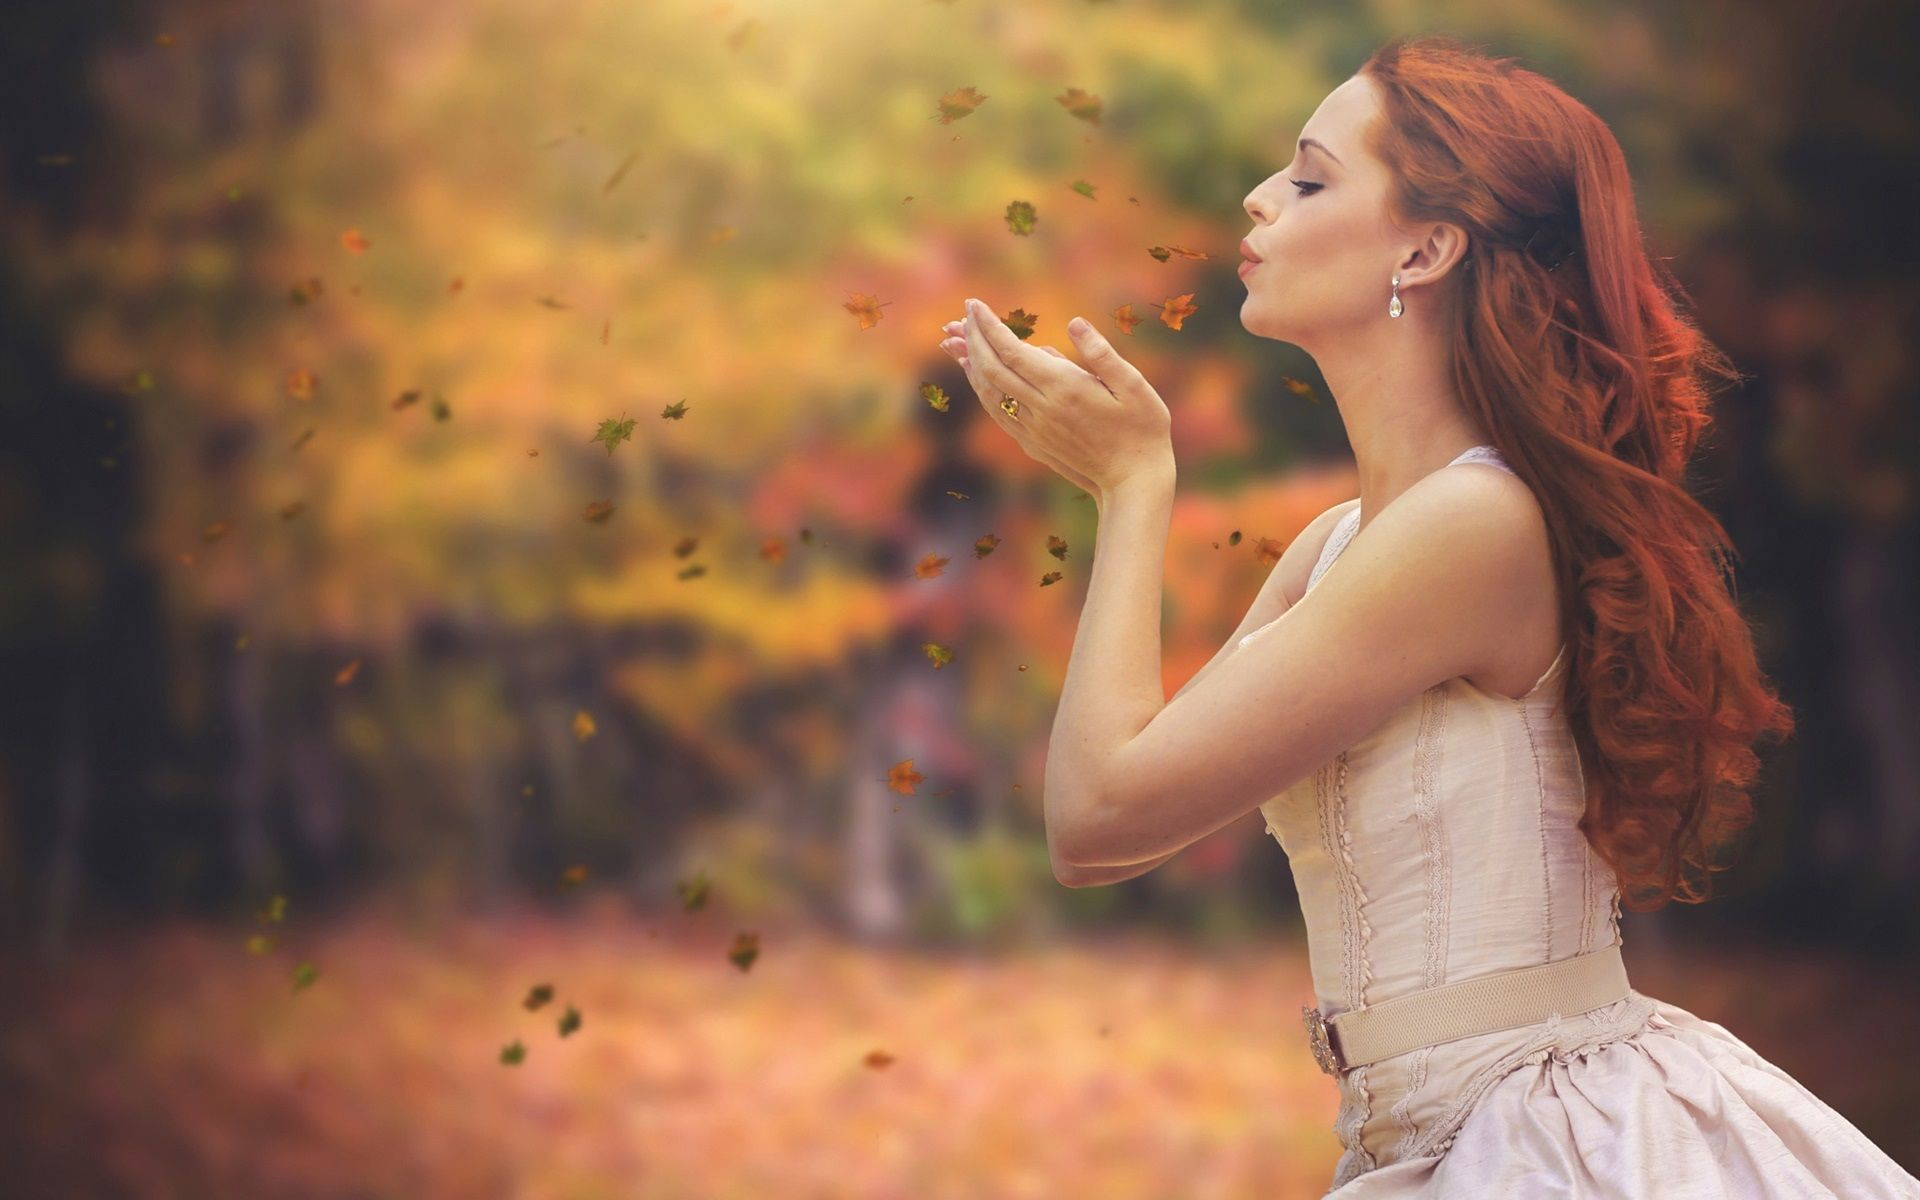 Autumn, leaves, red hair girl wallpaper 1920x1200